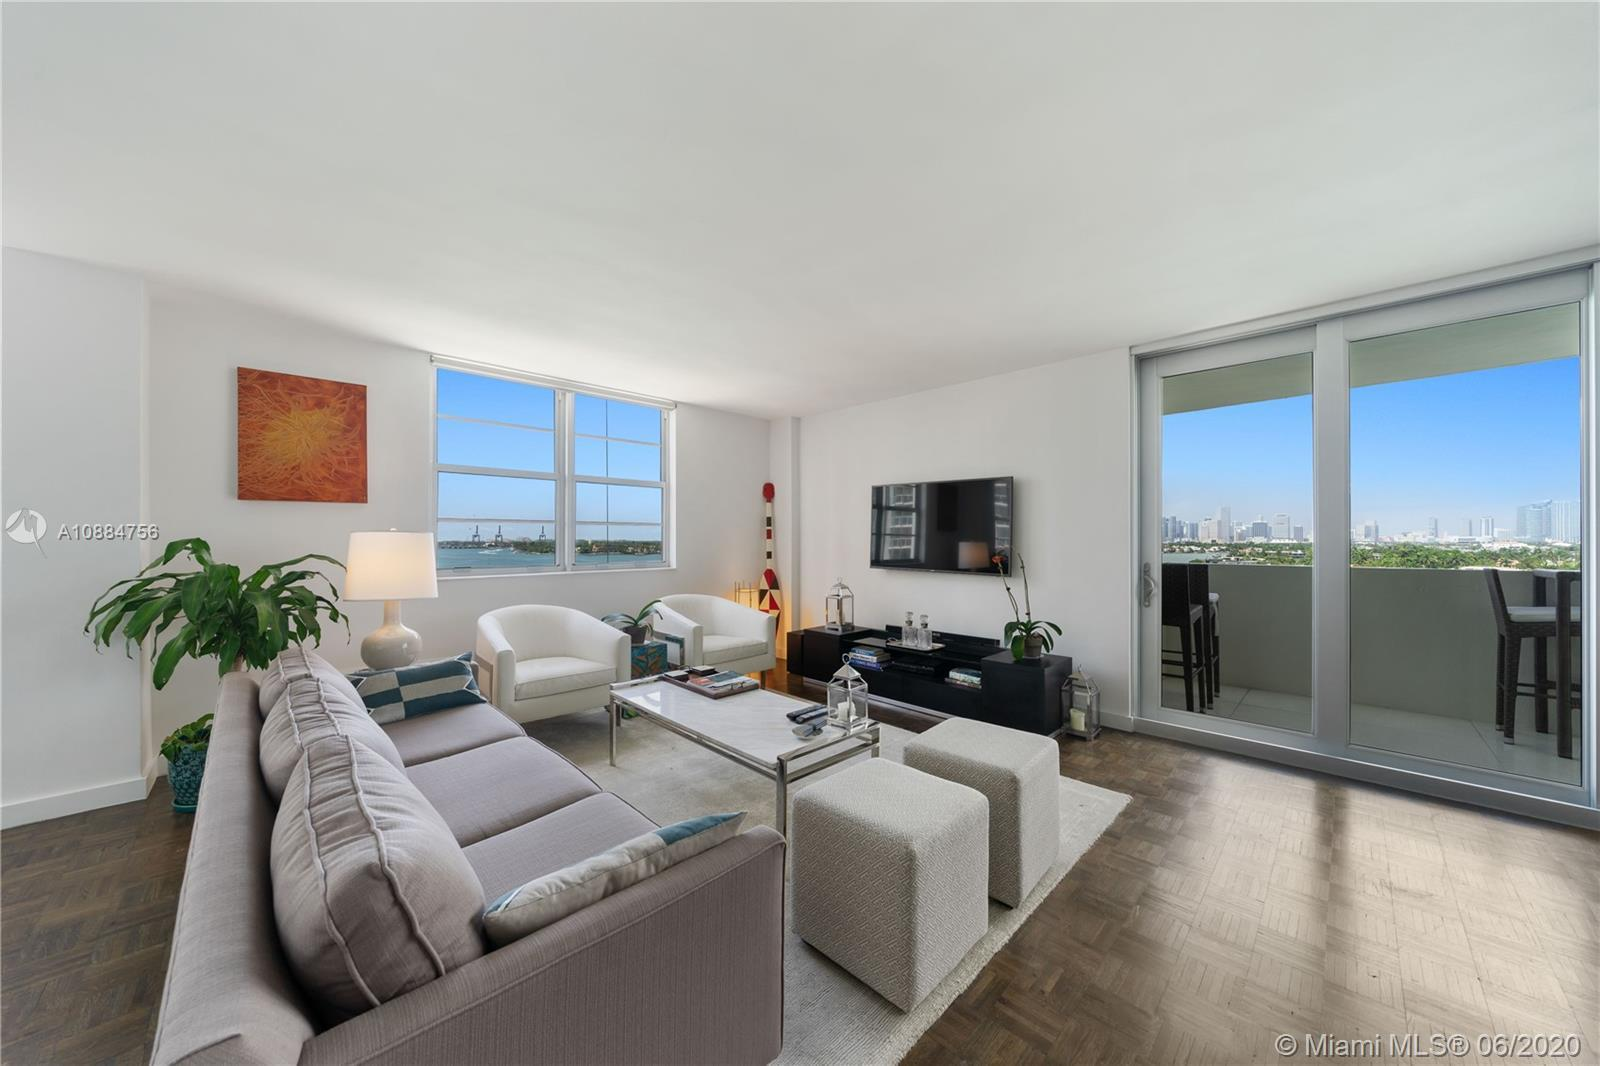 Experience unrivaled views overlooking Biscayne Bay and downtown Miami from this impeccably renovate